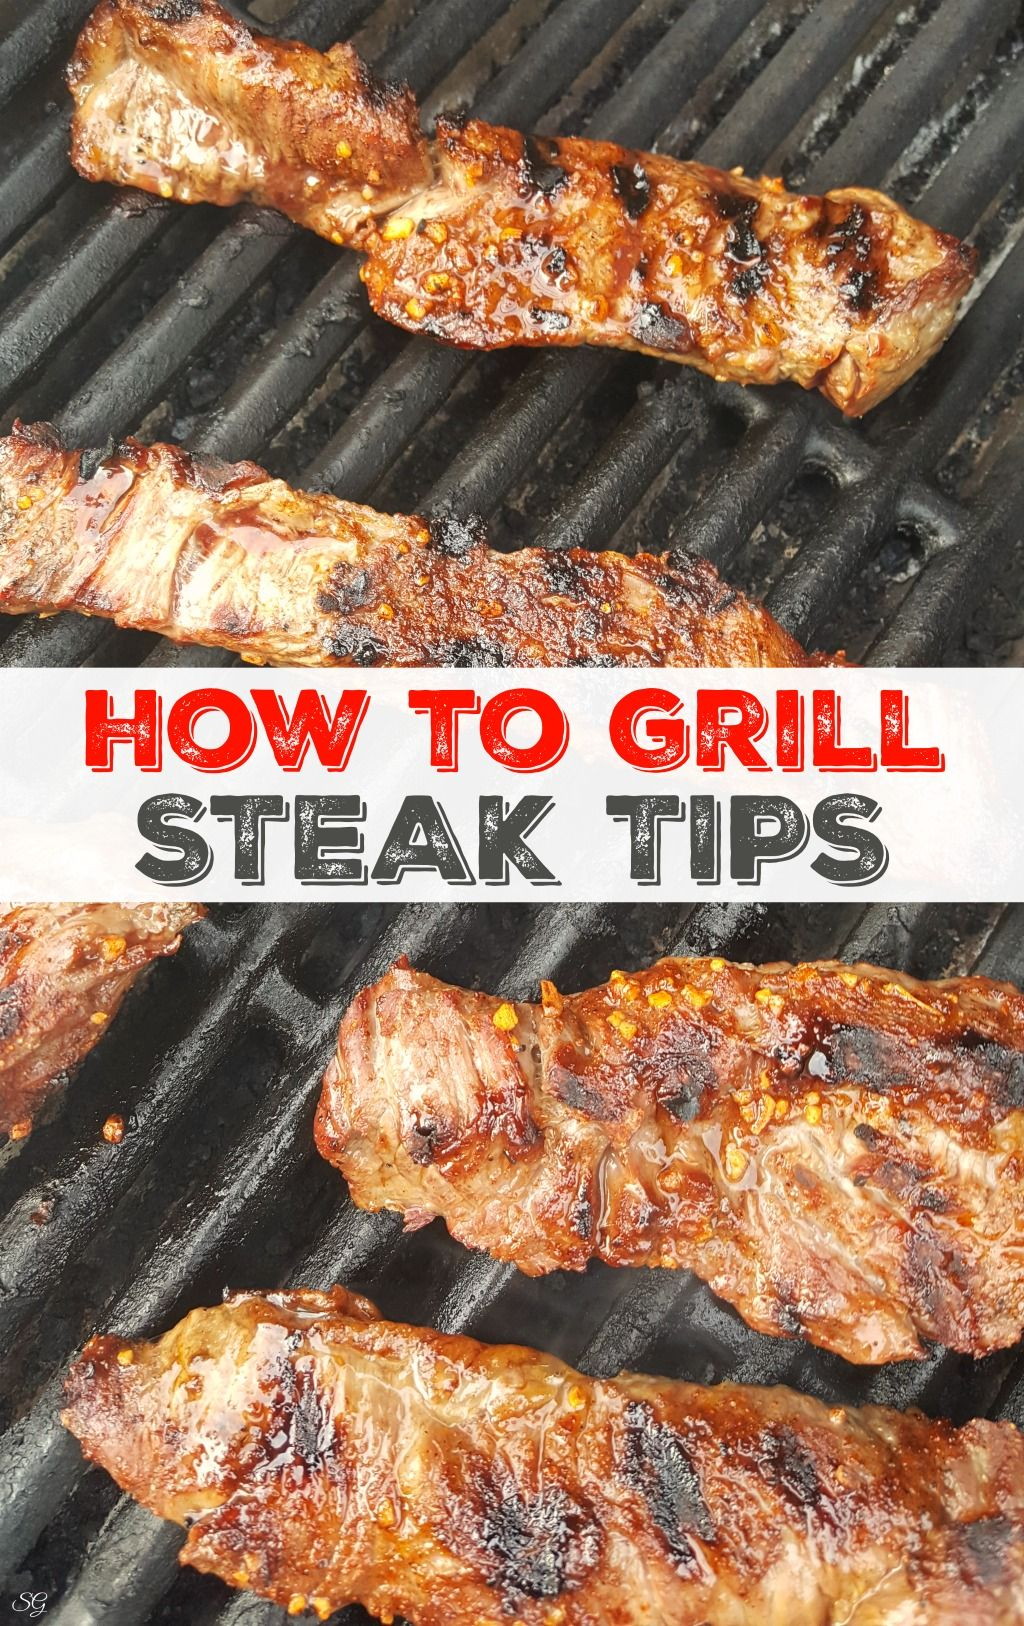 How To Grill Steak Tips. Cooking the perfect steak tips on ...